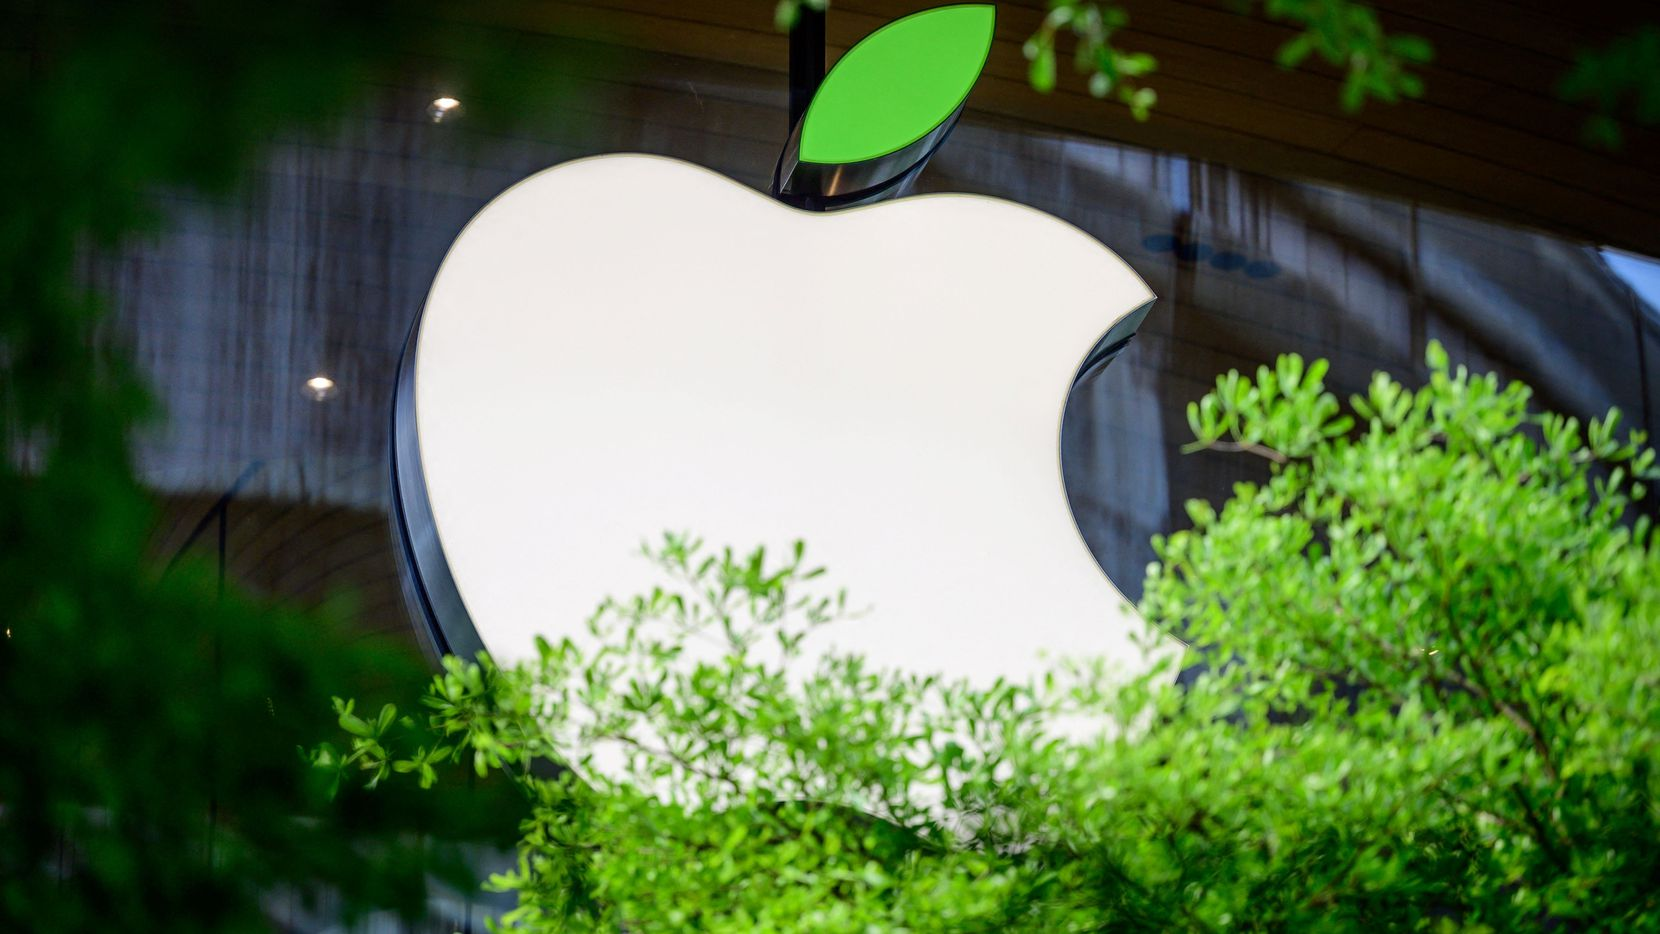 The Apple logo sporting a green leaf to mark the upcoming Earth Day is seen on a window of the company's store in Bangkok.